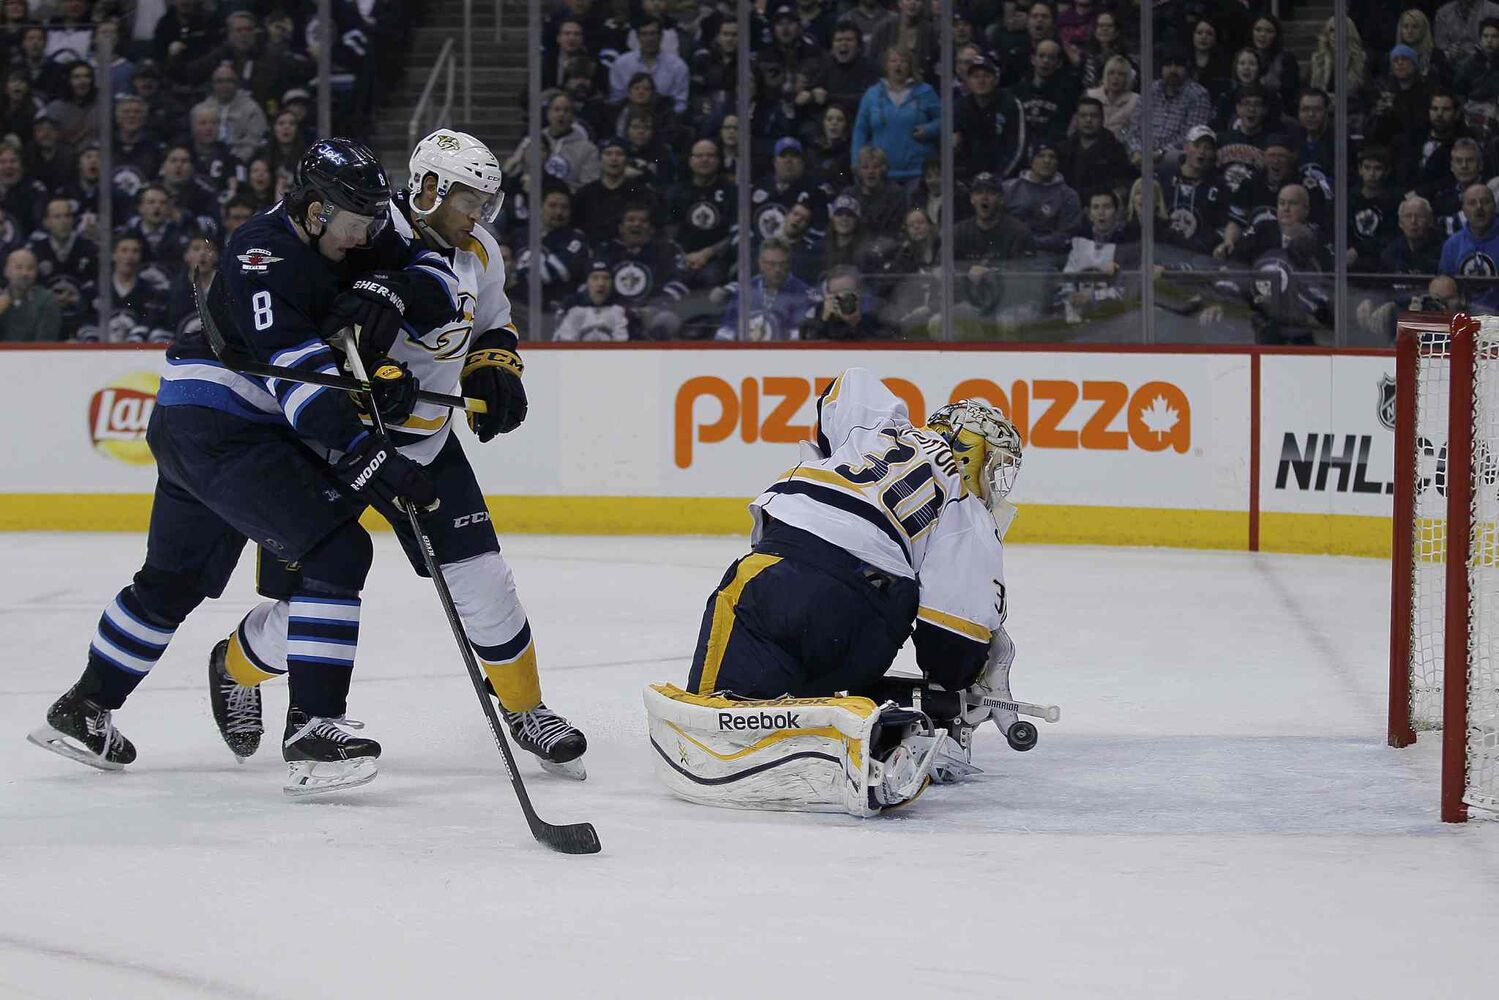 Nashville Predators' goaltender Carter Hutton's (30) save goes off of his own leg for the goal by Winnipeg Jets' Blake Wheeler's (26) as Jets' Jacob Trouba (8) and Preds' Seth Jones (3) look on during second period in Winnipeg Tuesday.